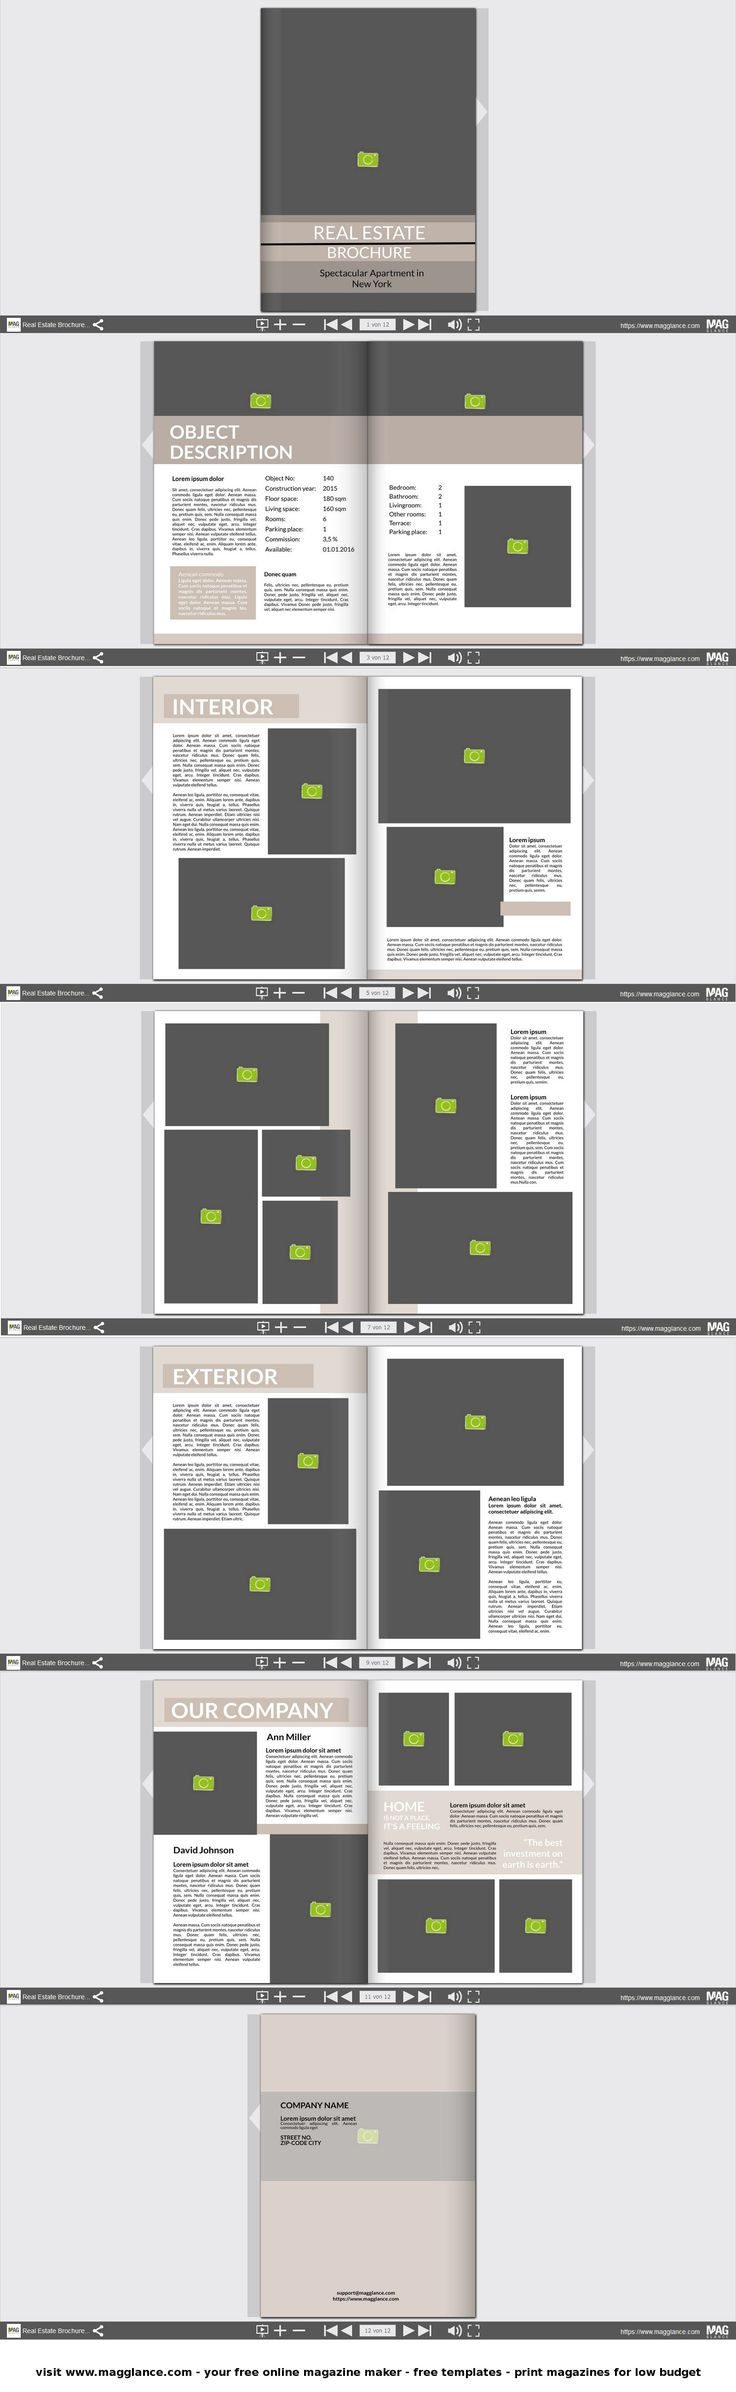 8 best Immobilien Branding images on Pinterest | Page layout, Real ...